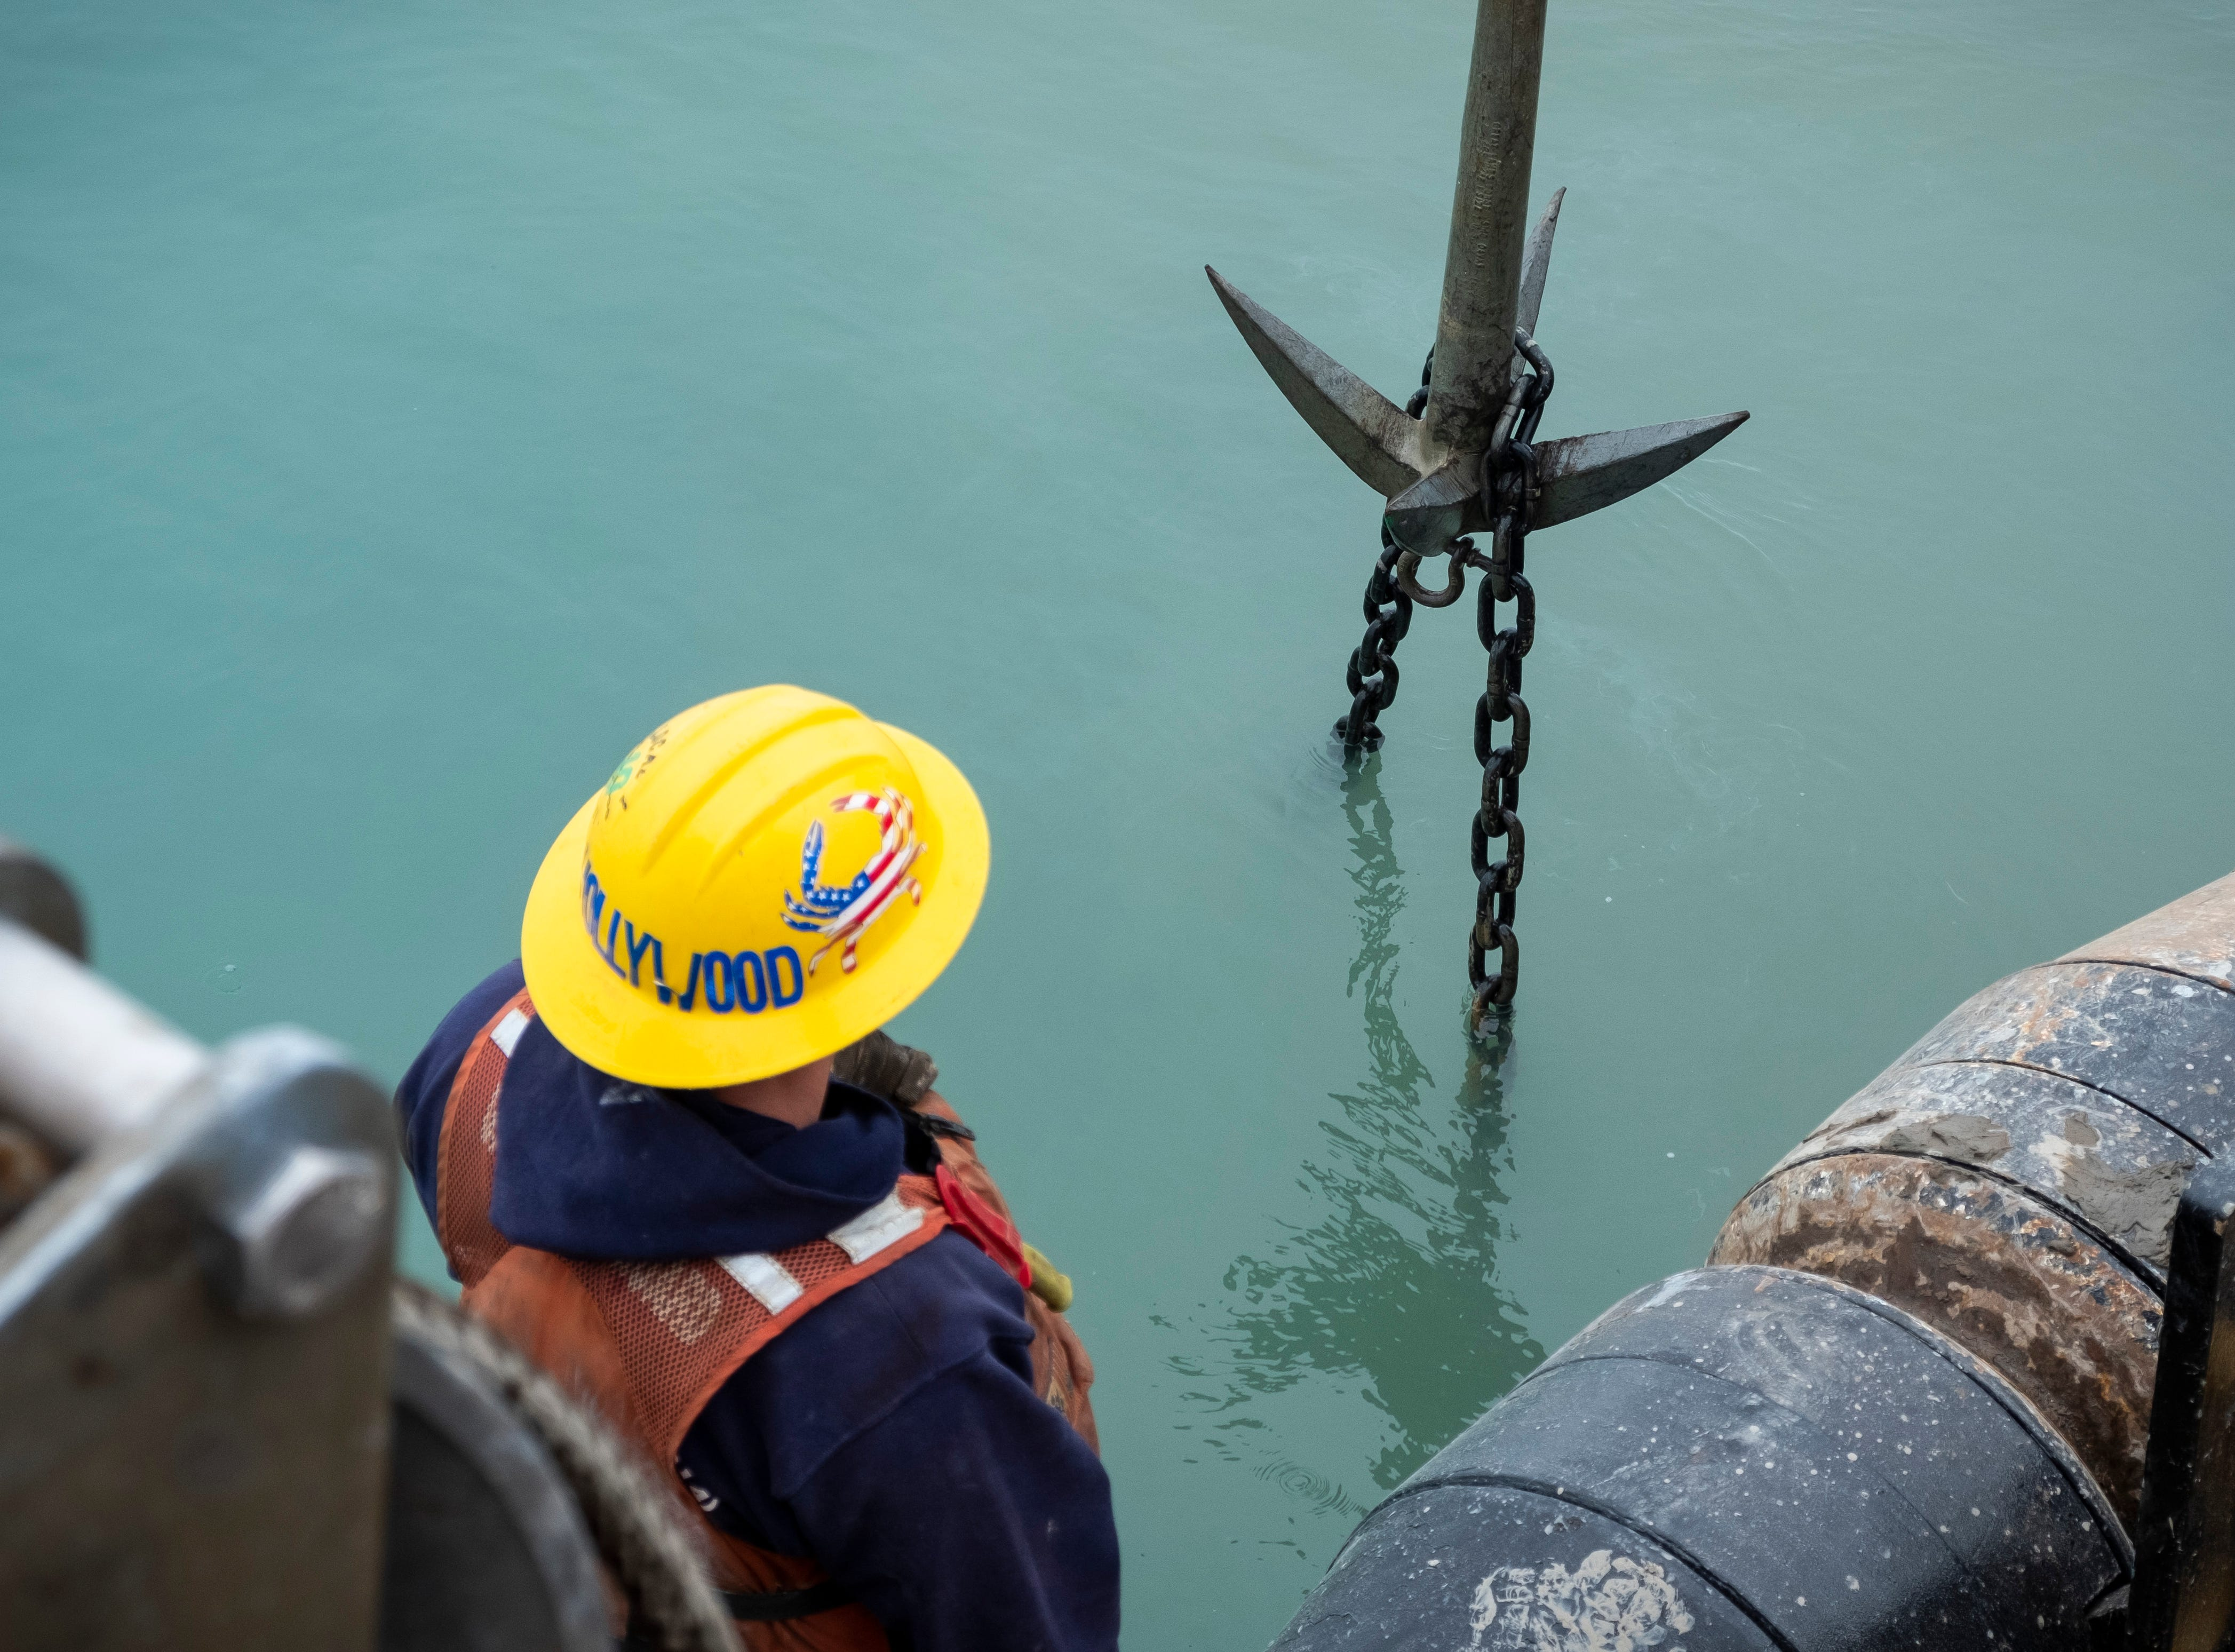 After some time, the grapple is lifted out of the water. On the crew's first attempt, it hooked onto the buoy's chain.